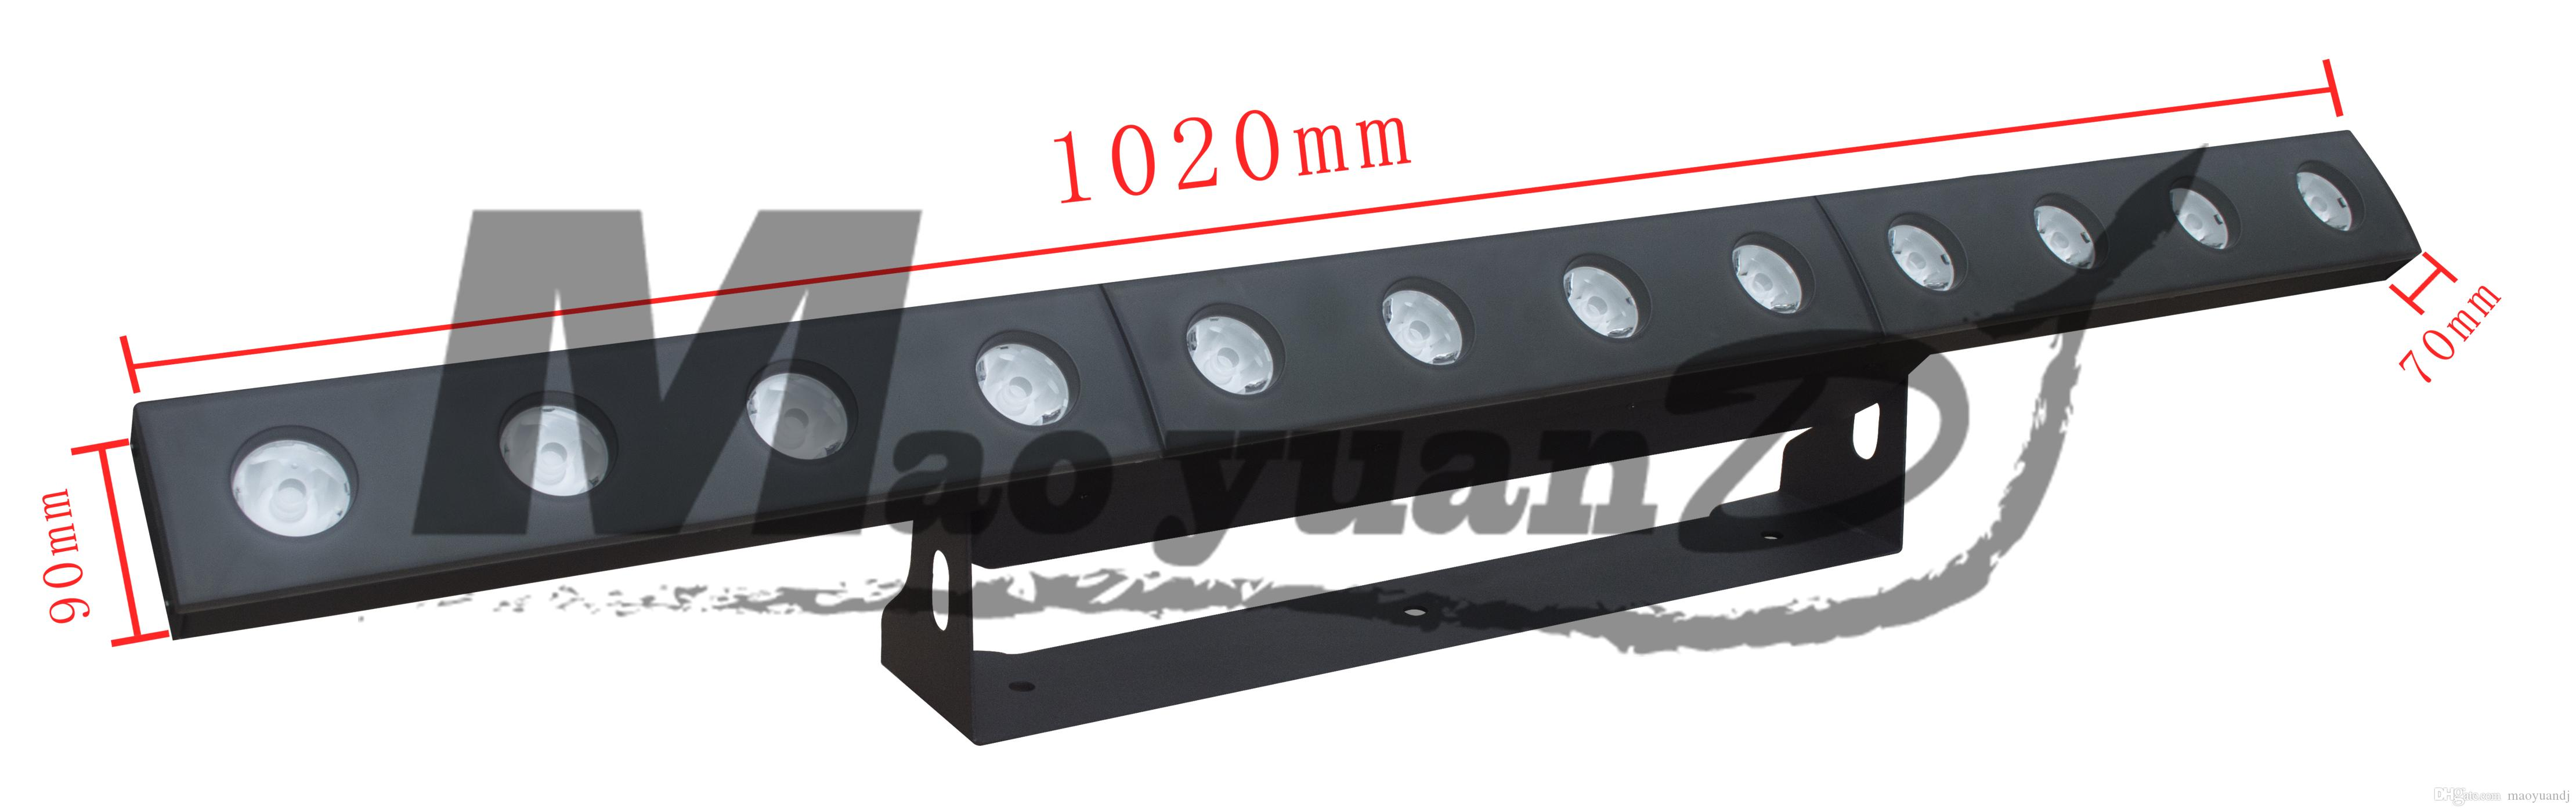 lowest price e04c3 248ca New LED Quick Wash Wall Washer dj lighting,12 PCS*3W LED super-bright wash  wall lights building decorated